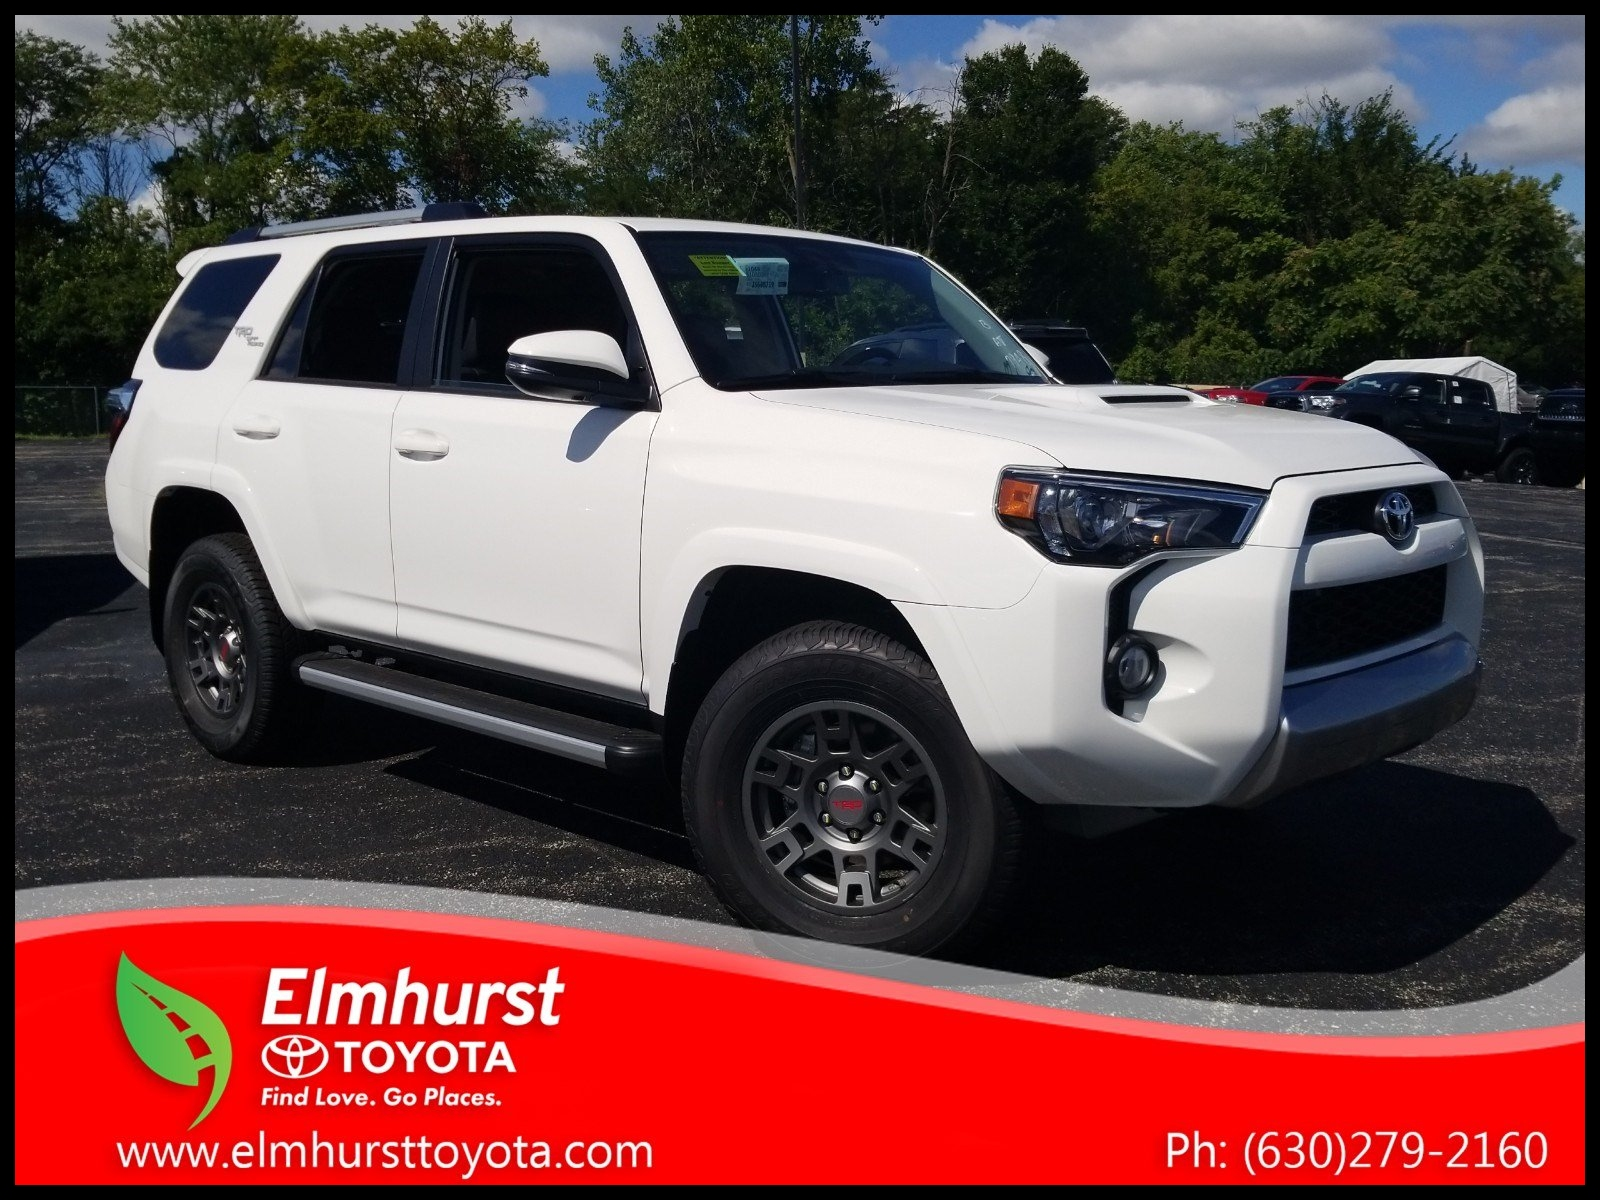 New 2018 Toyota 4Runner TRD f Road Premium